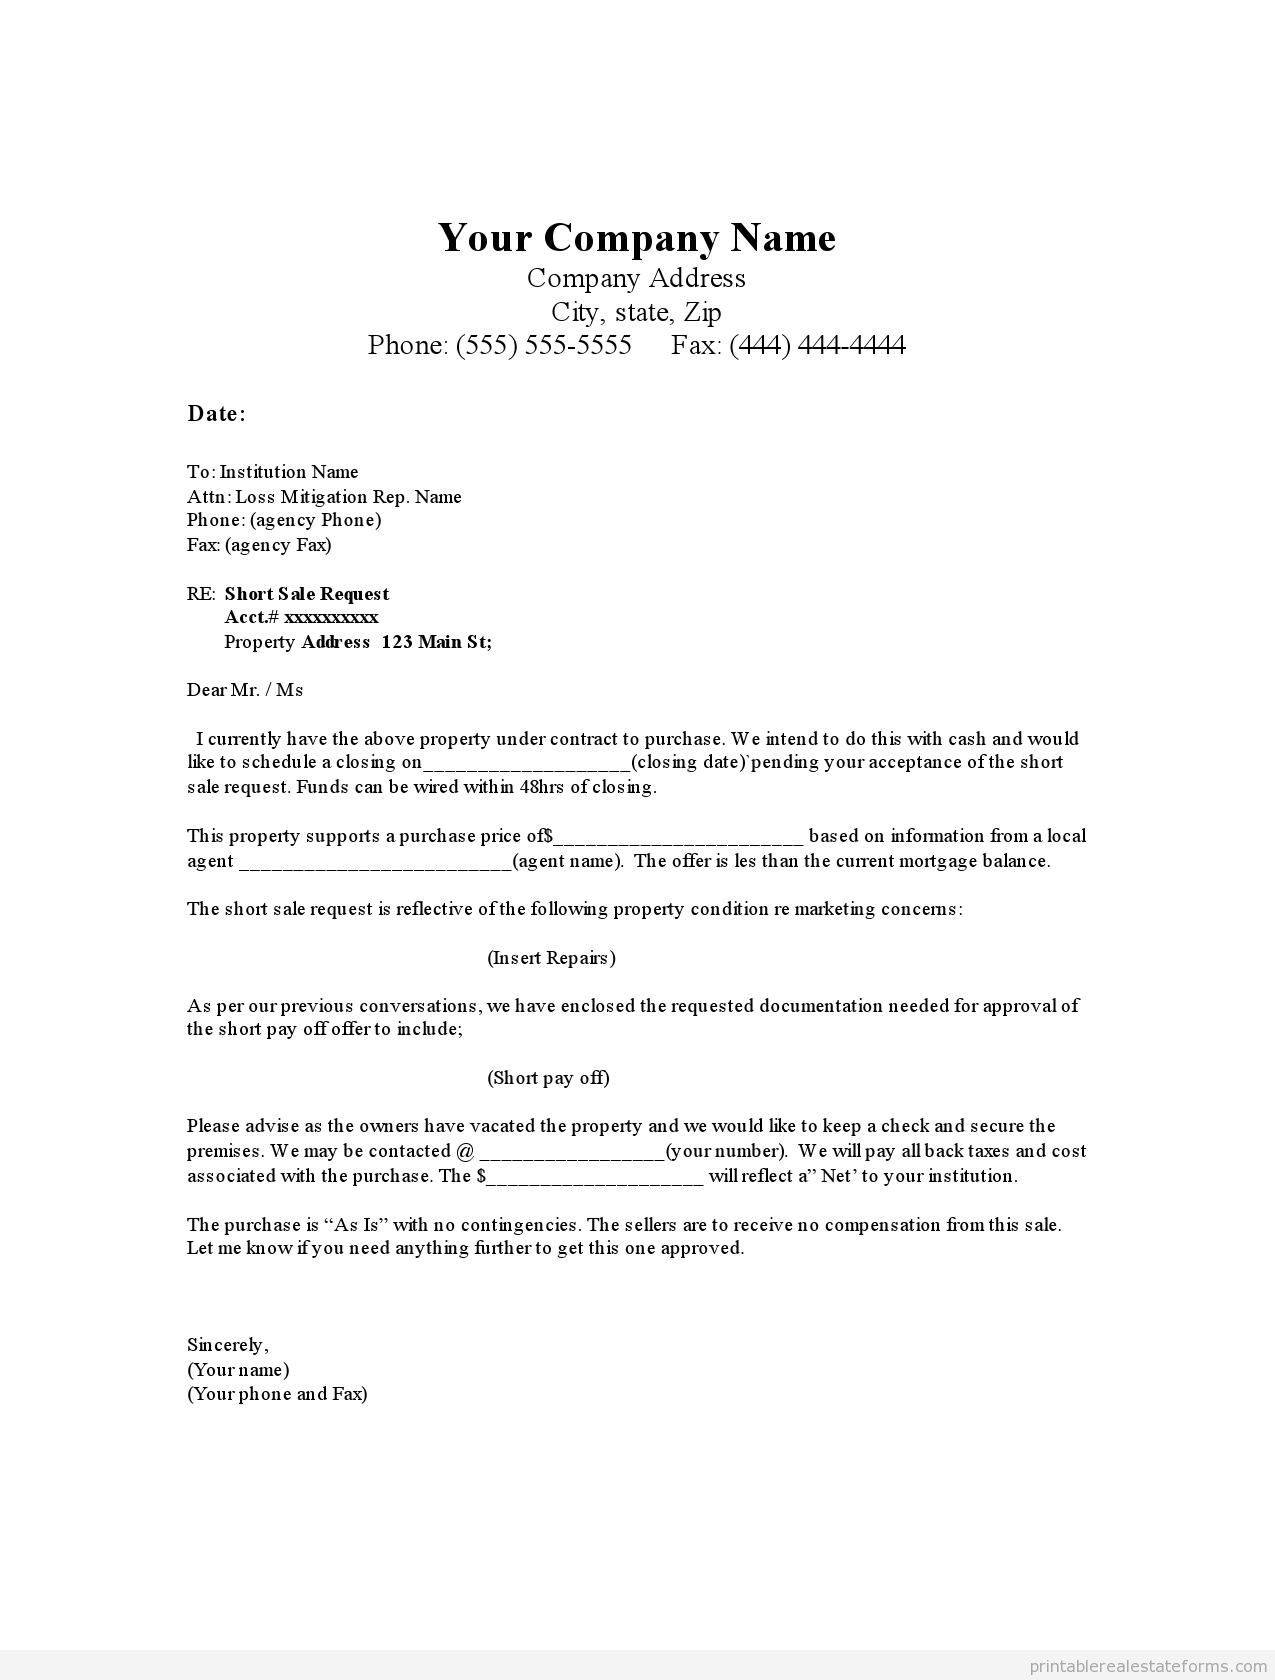 Letter to Home Seller From Buyer Template - Free Cover Letter Templates Letter to Seller From Er Template